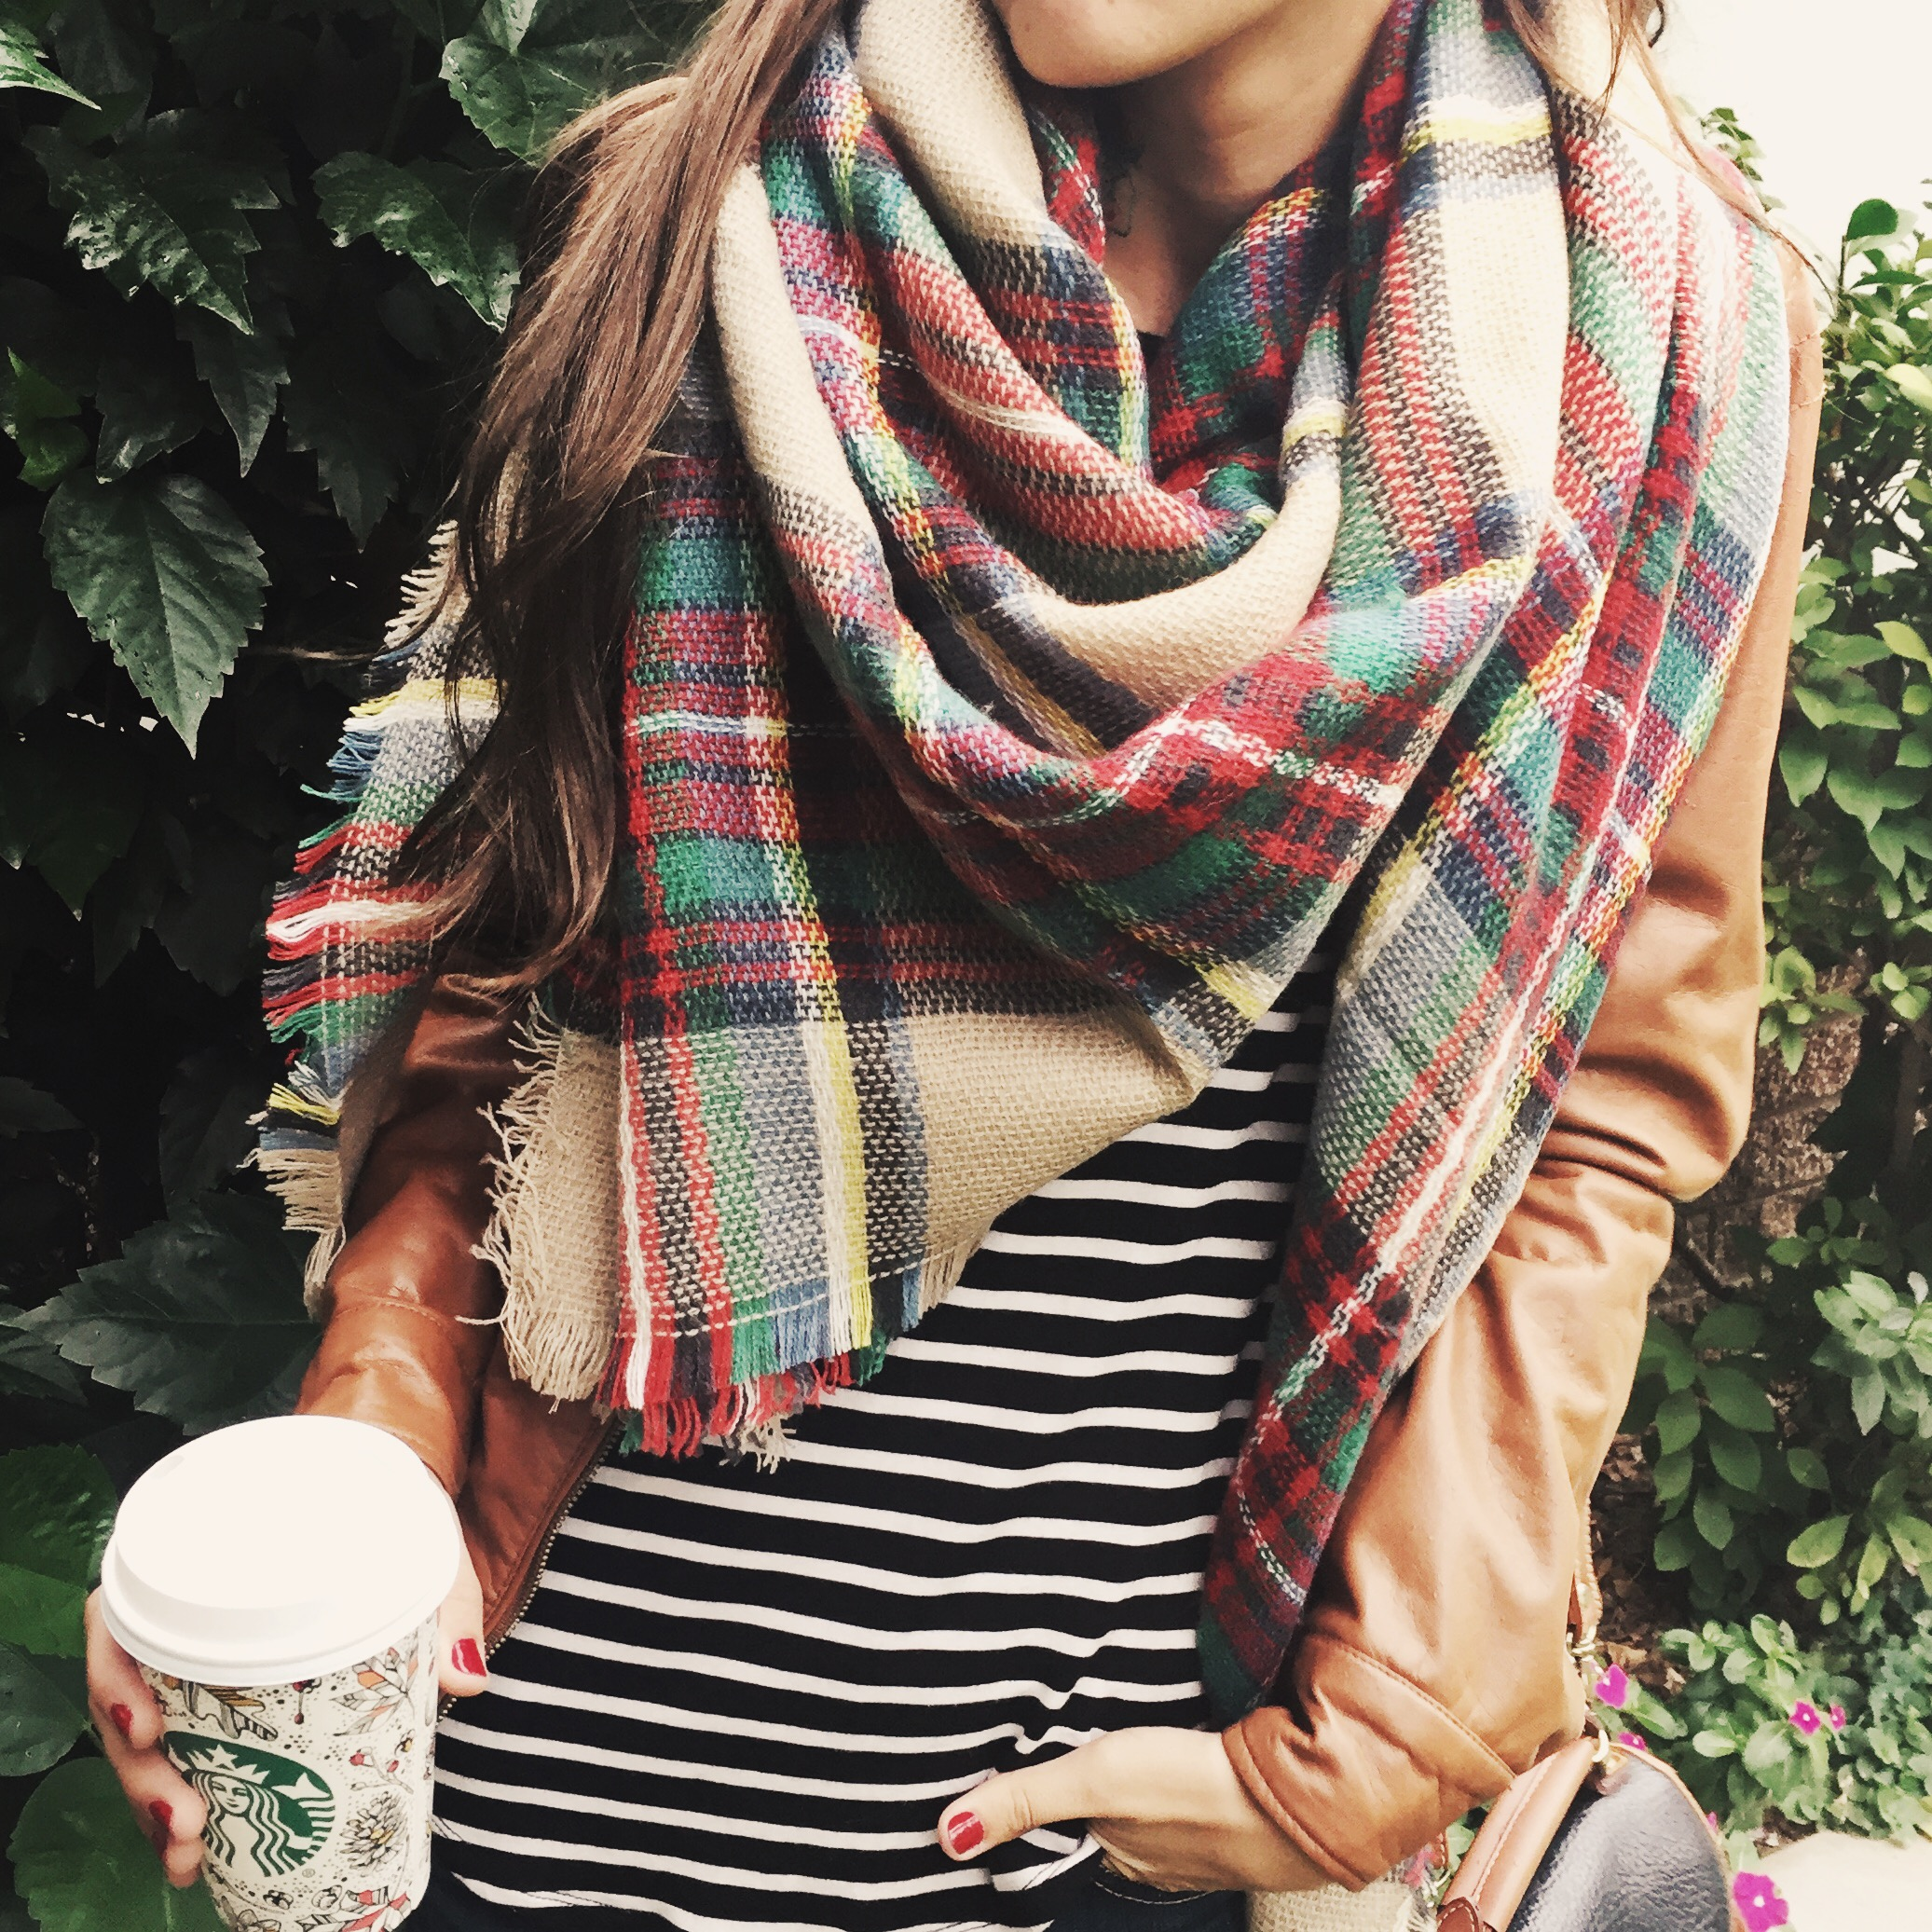 Moo's Musing Brown Leather Jacket with Plaid Blanket Scarf